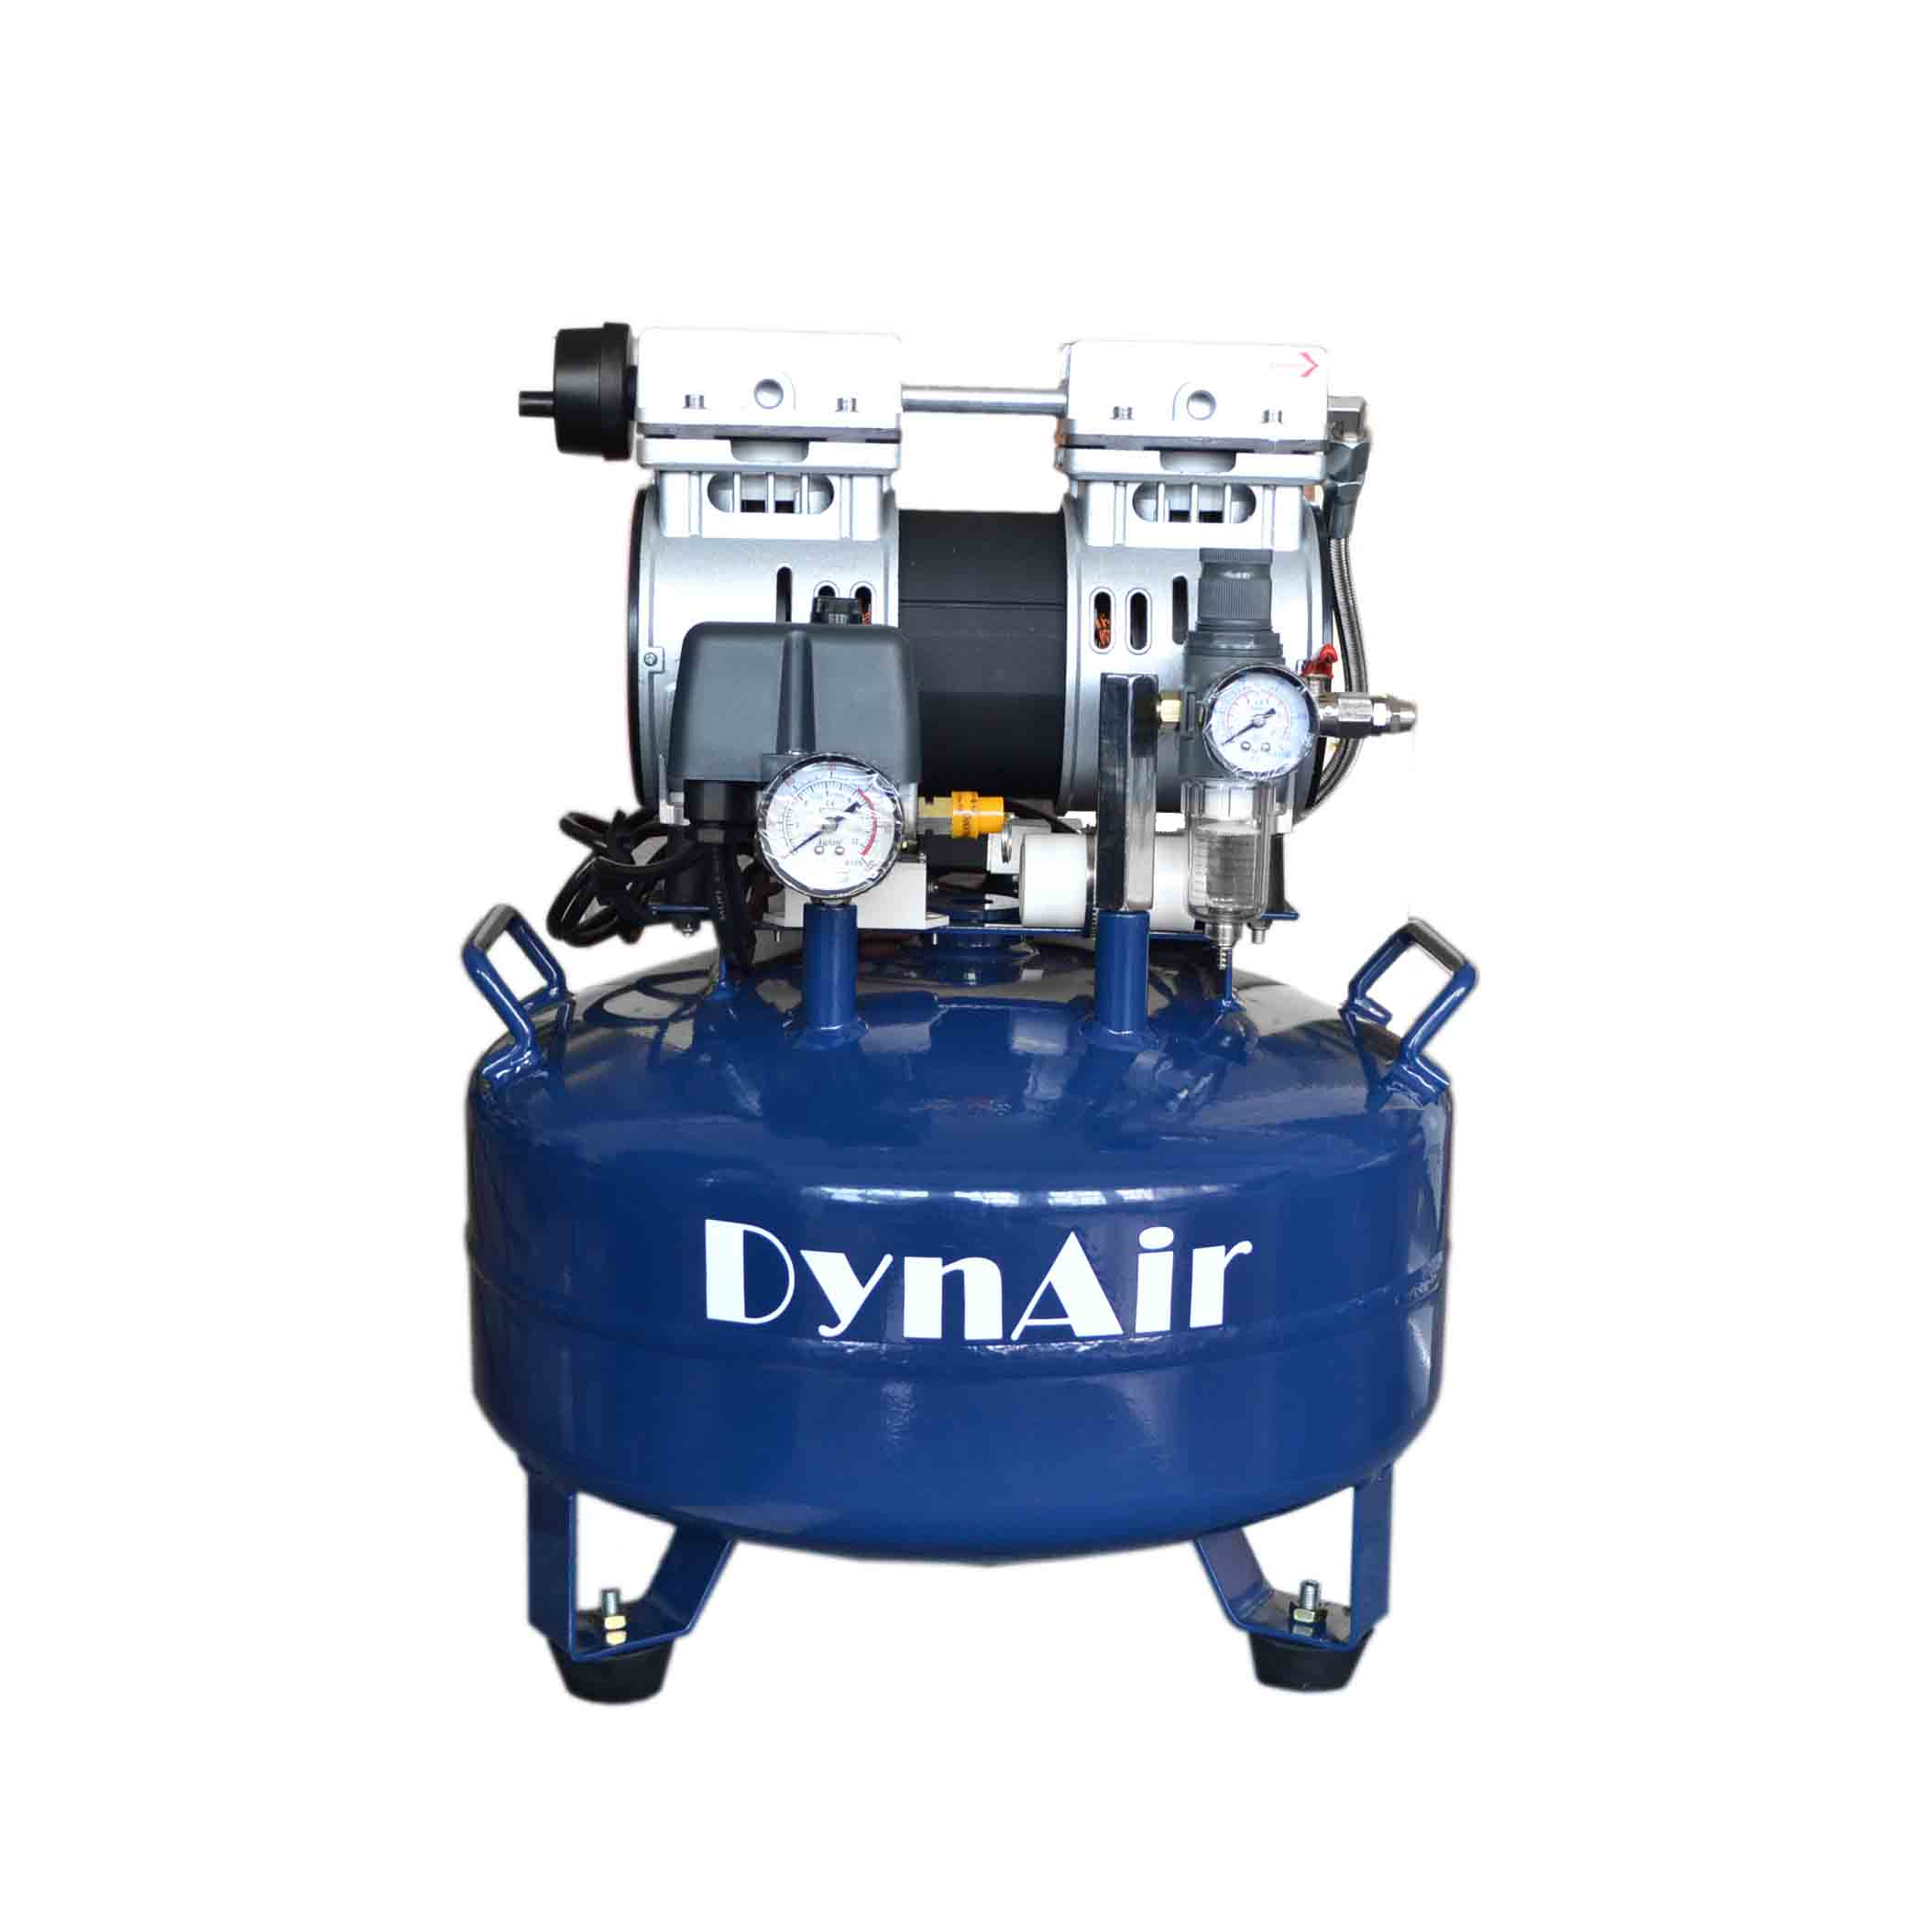 22L Dental Air Compressor Noiseless Oilless 115L/min 1-Driving-1 Stable DA5001